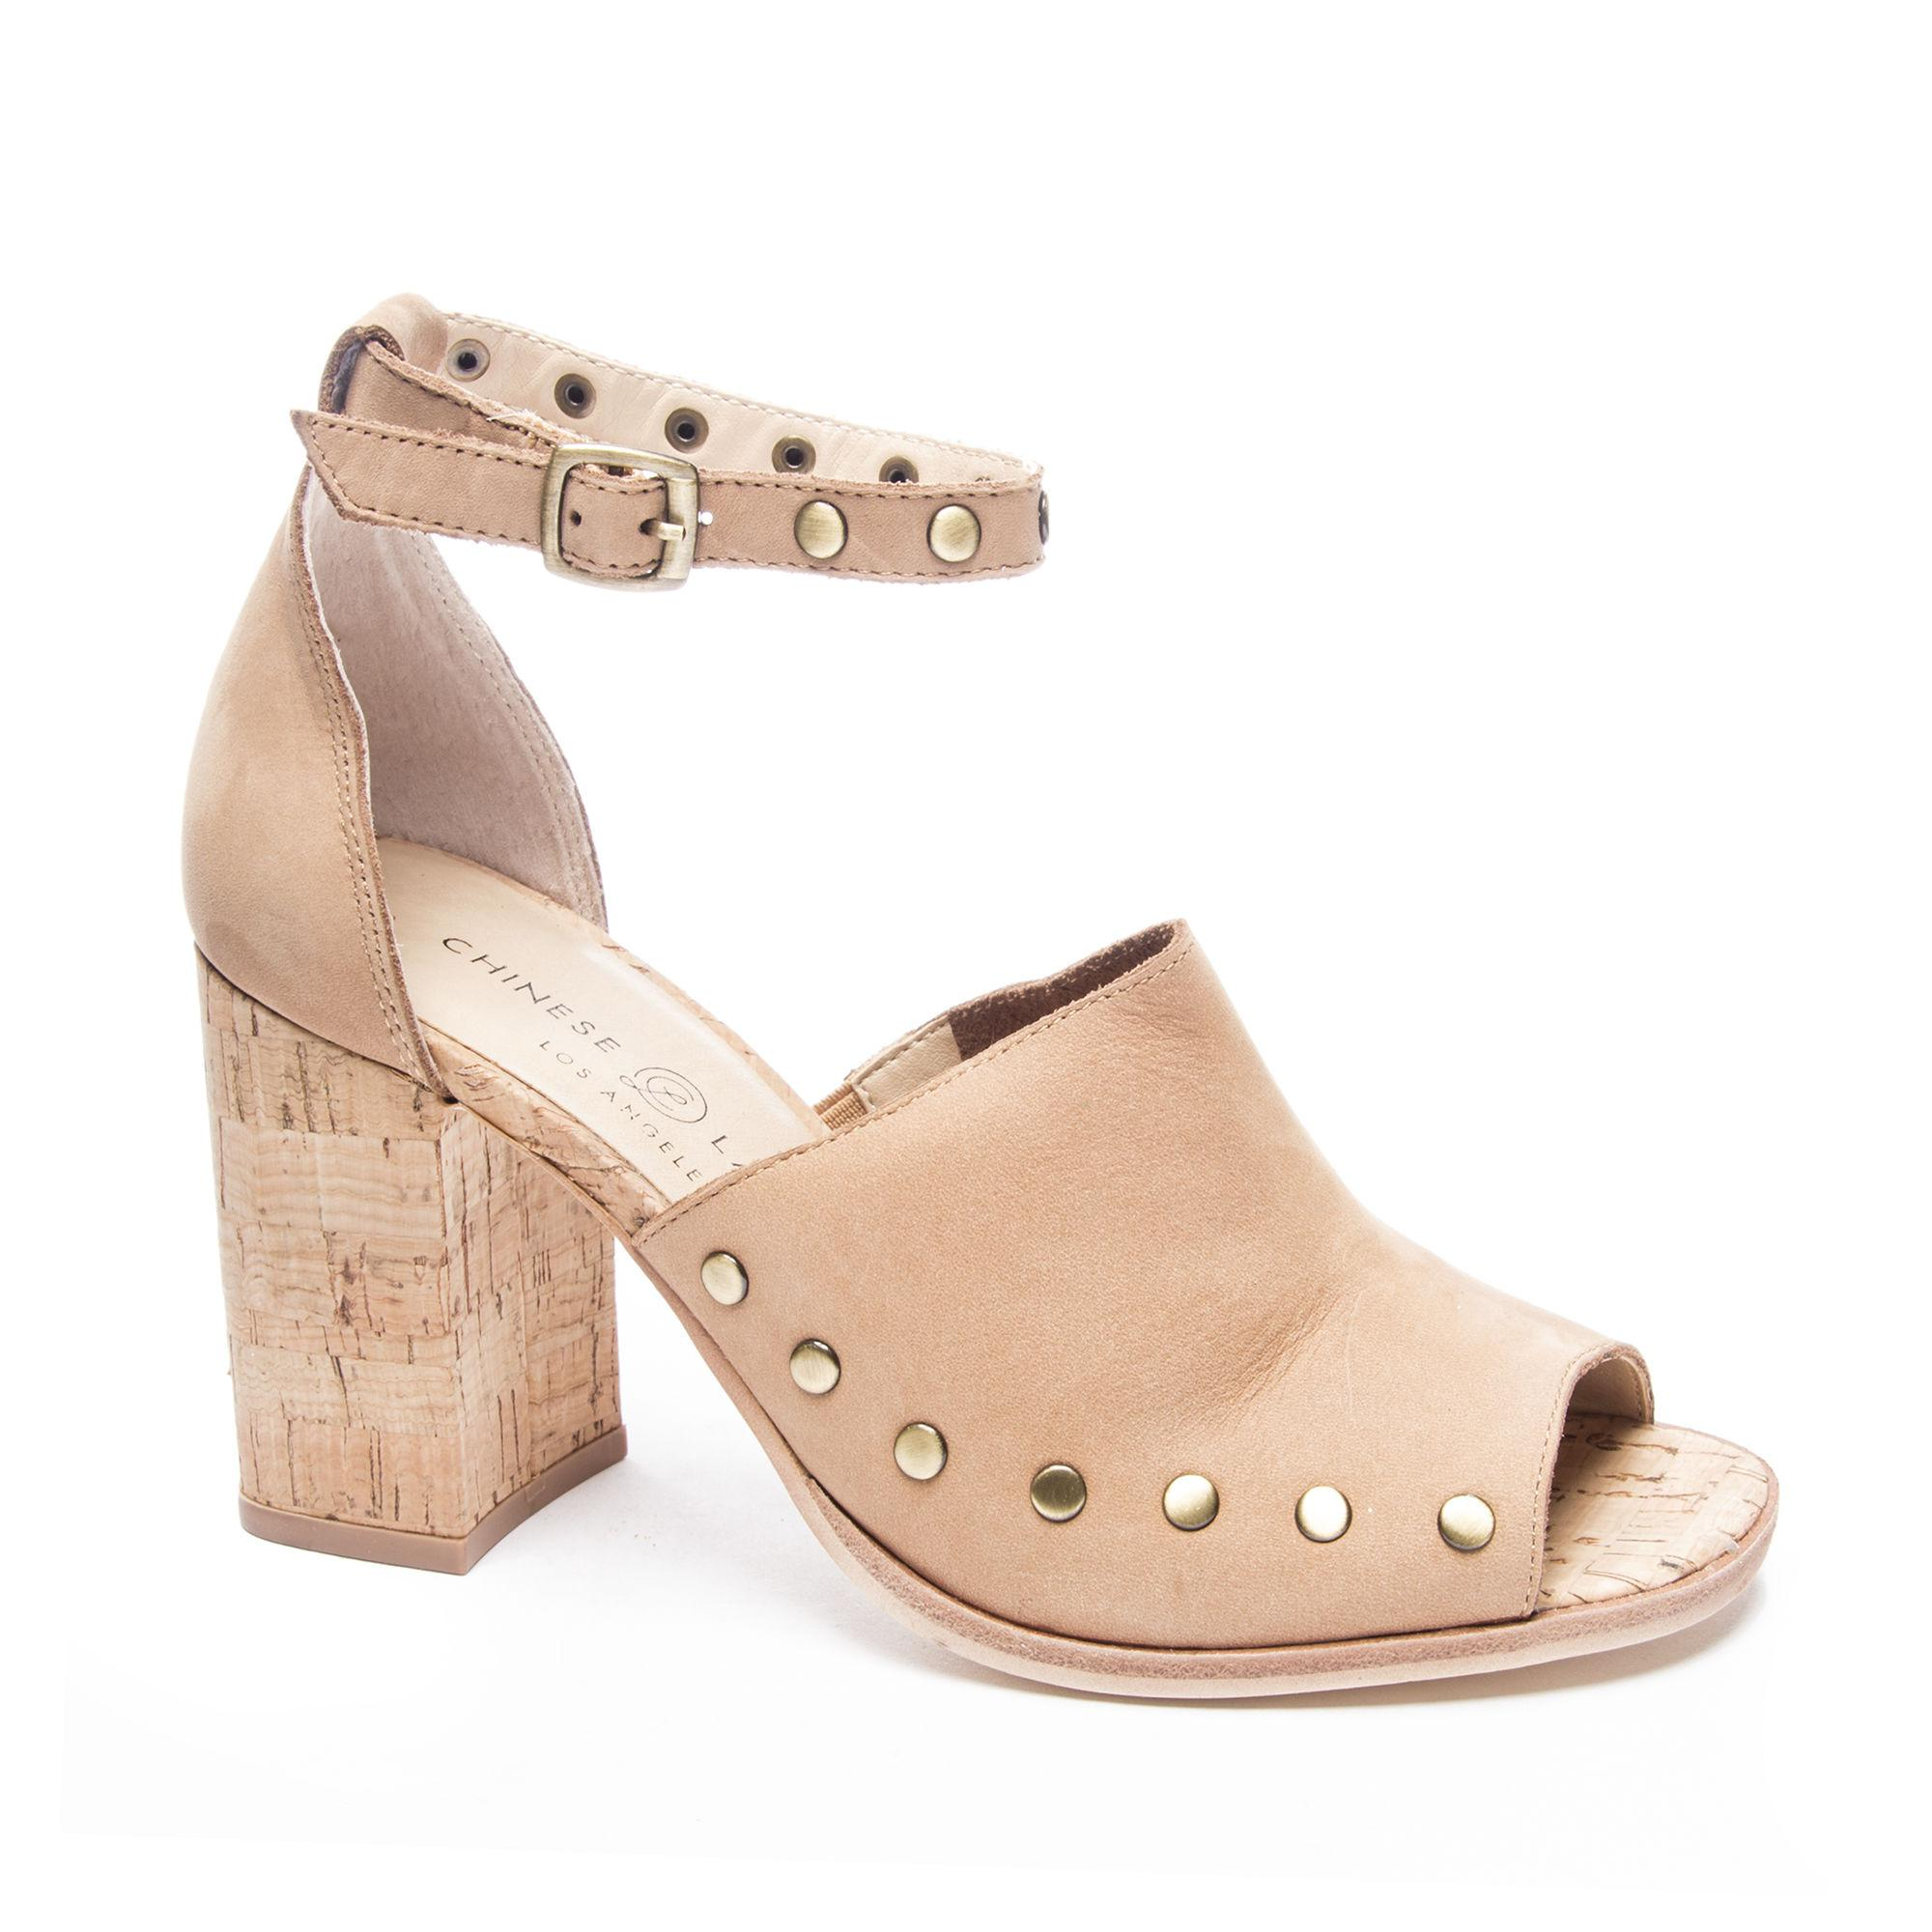 de2f4e65742 Lyst - Chinese Laundry Savana Block Heel Sandal in Natural